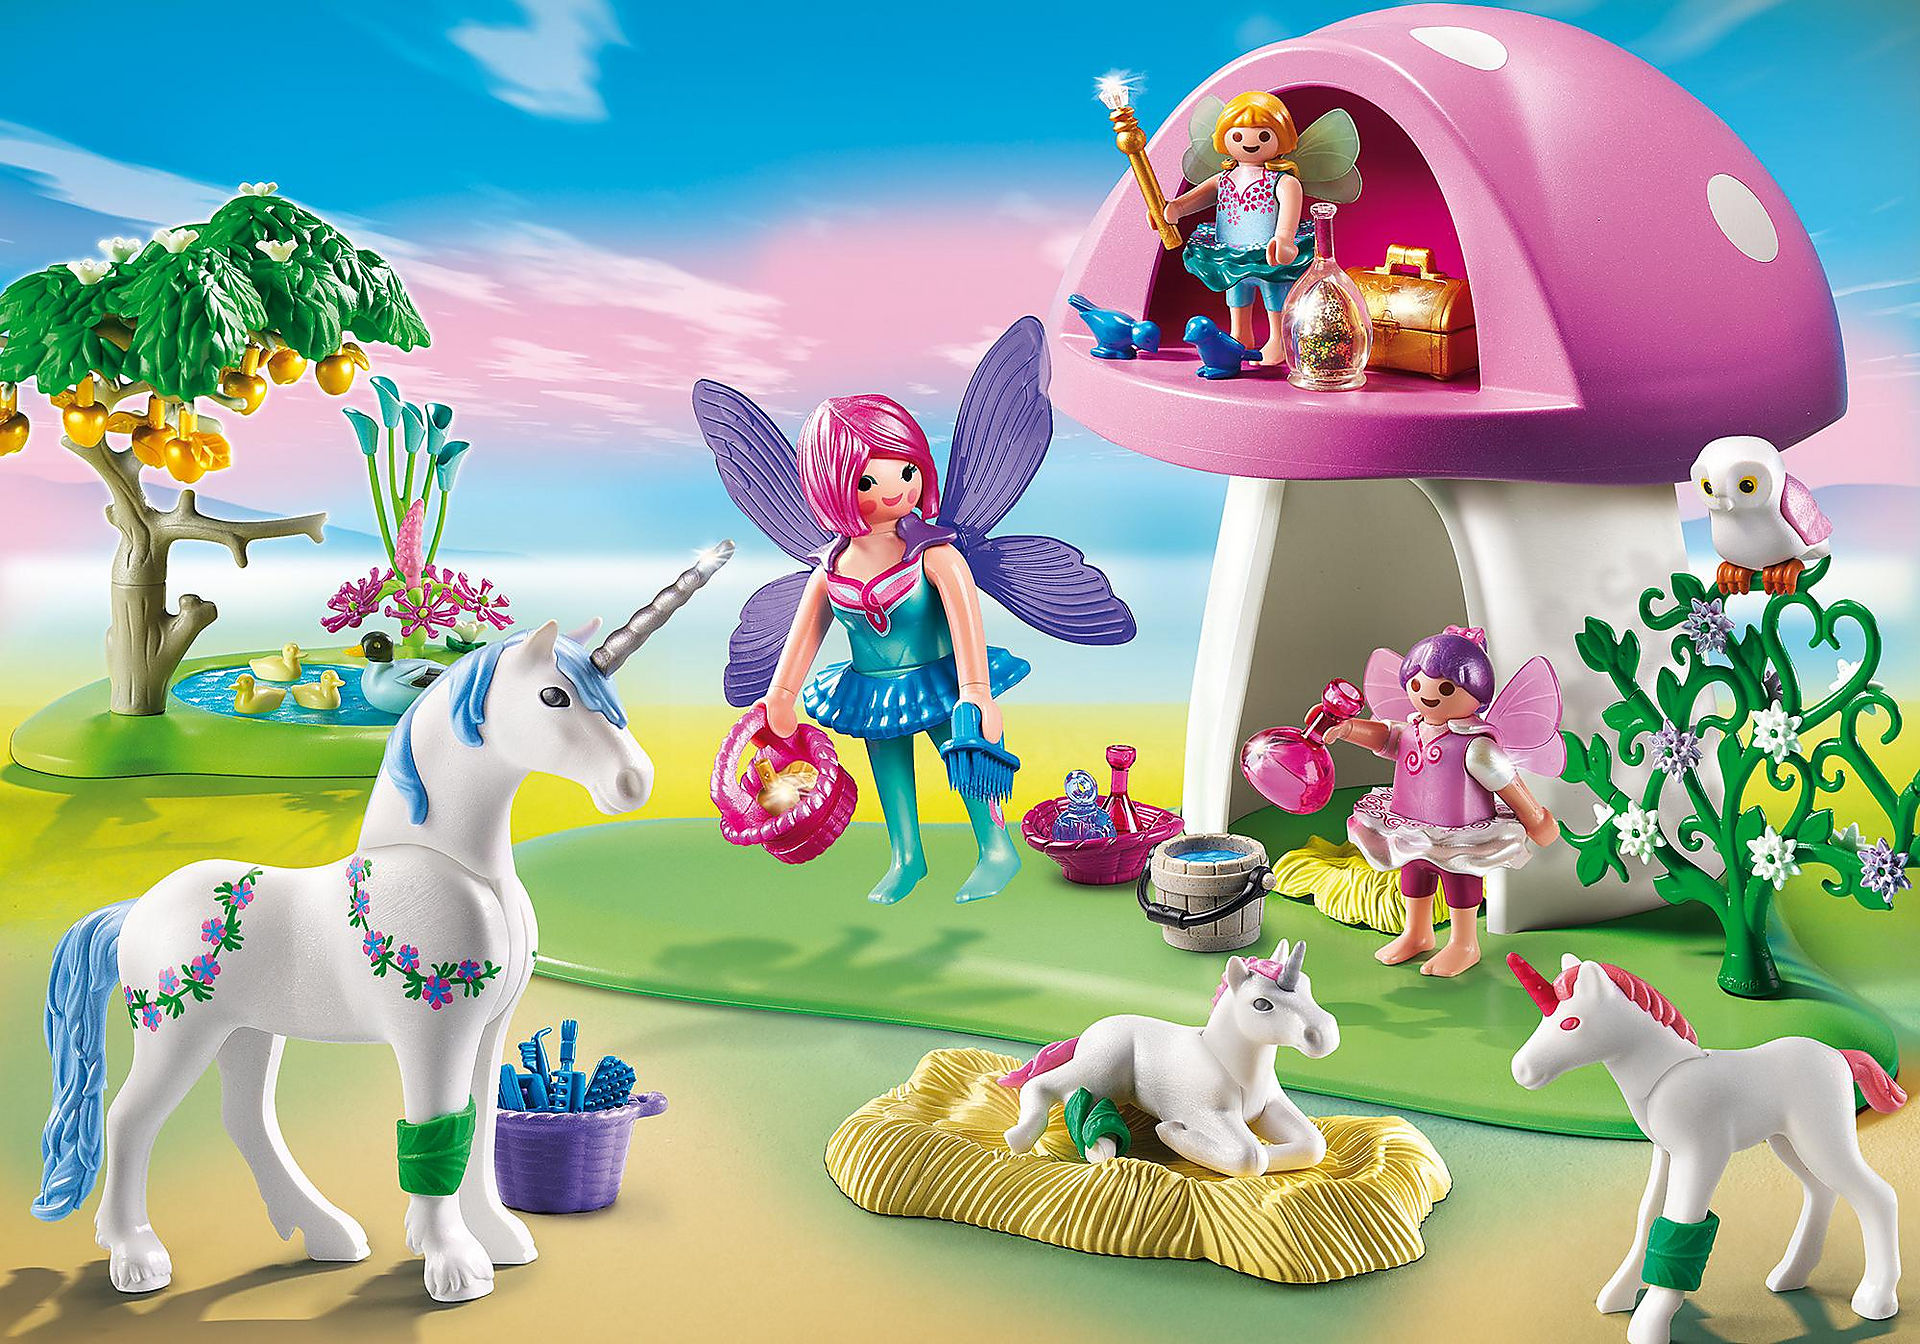 http://media.playmobil.com/i/playmobil/6055_product_detail/Casa fungo delle fatine